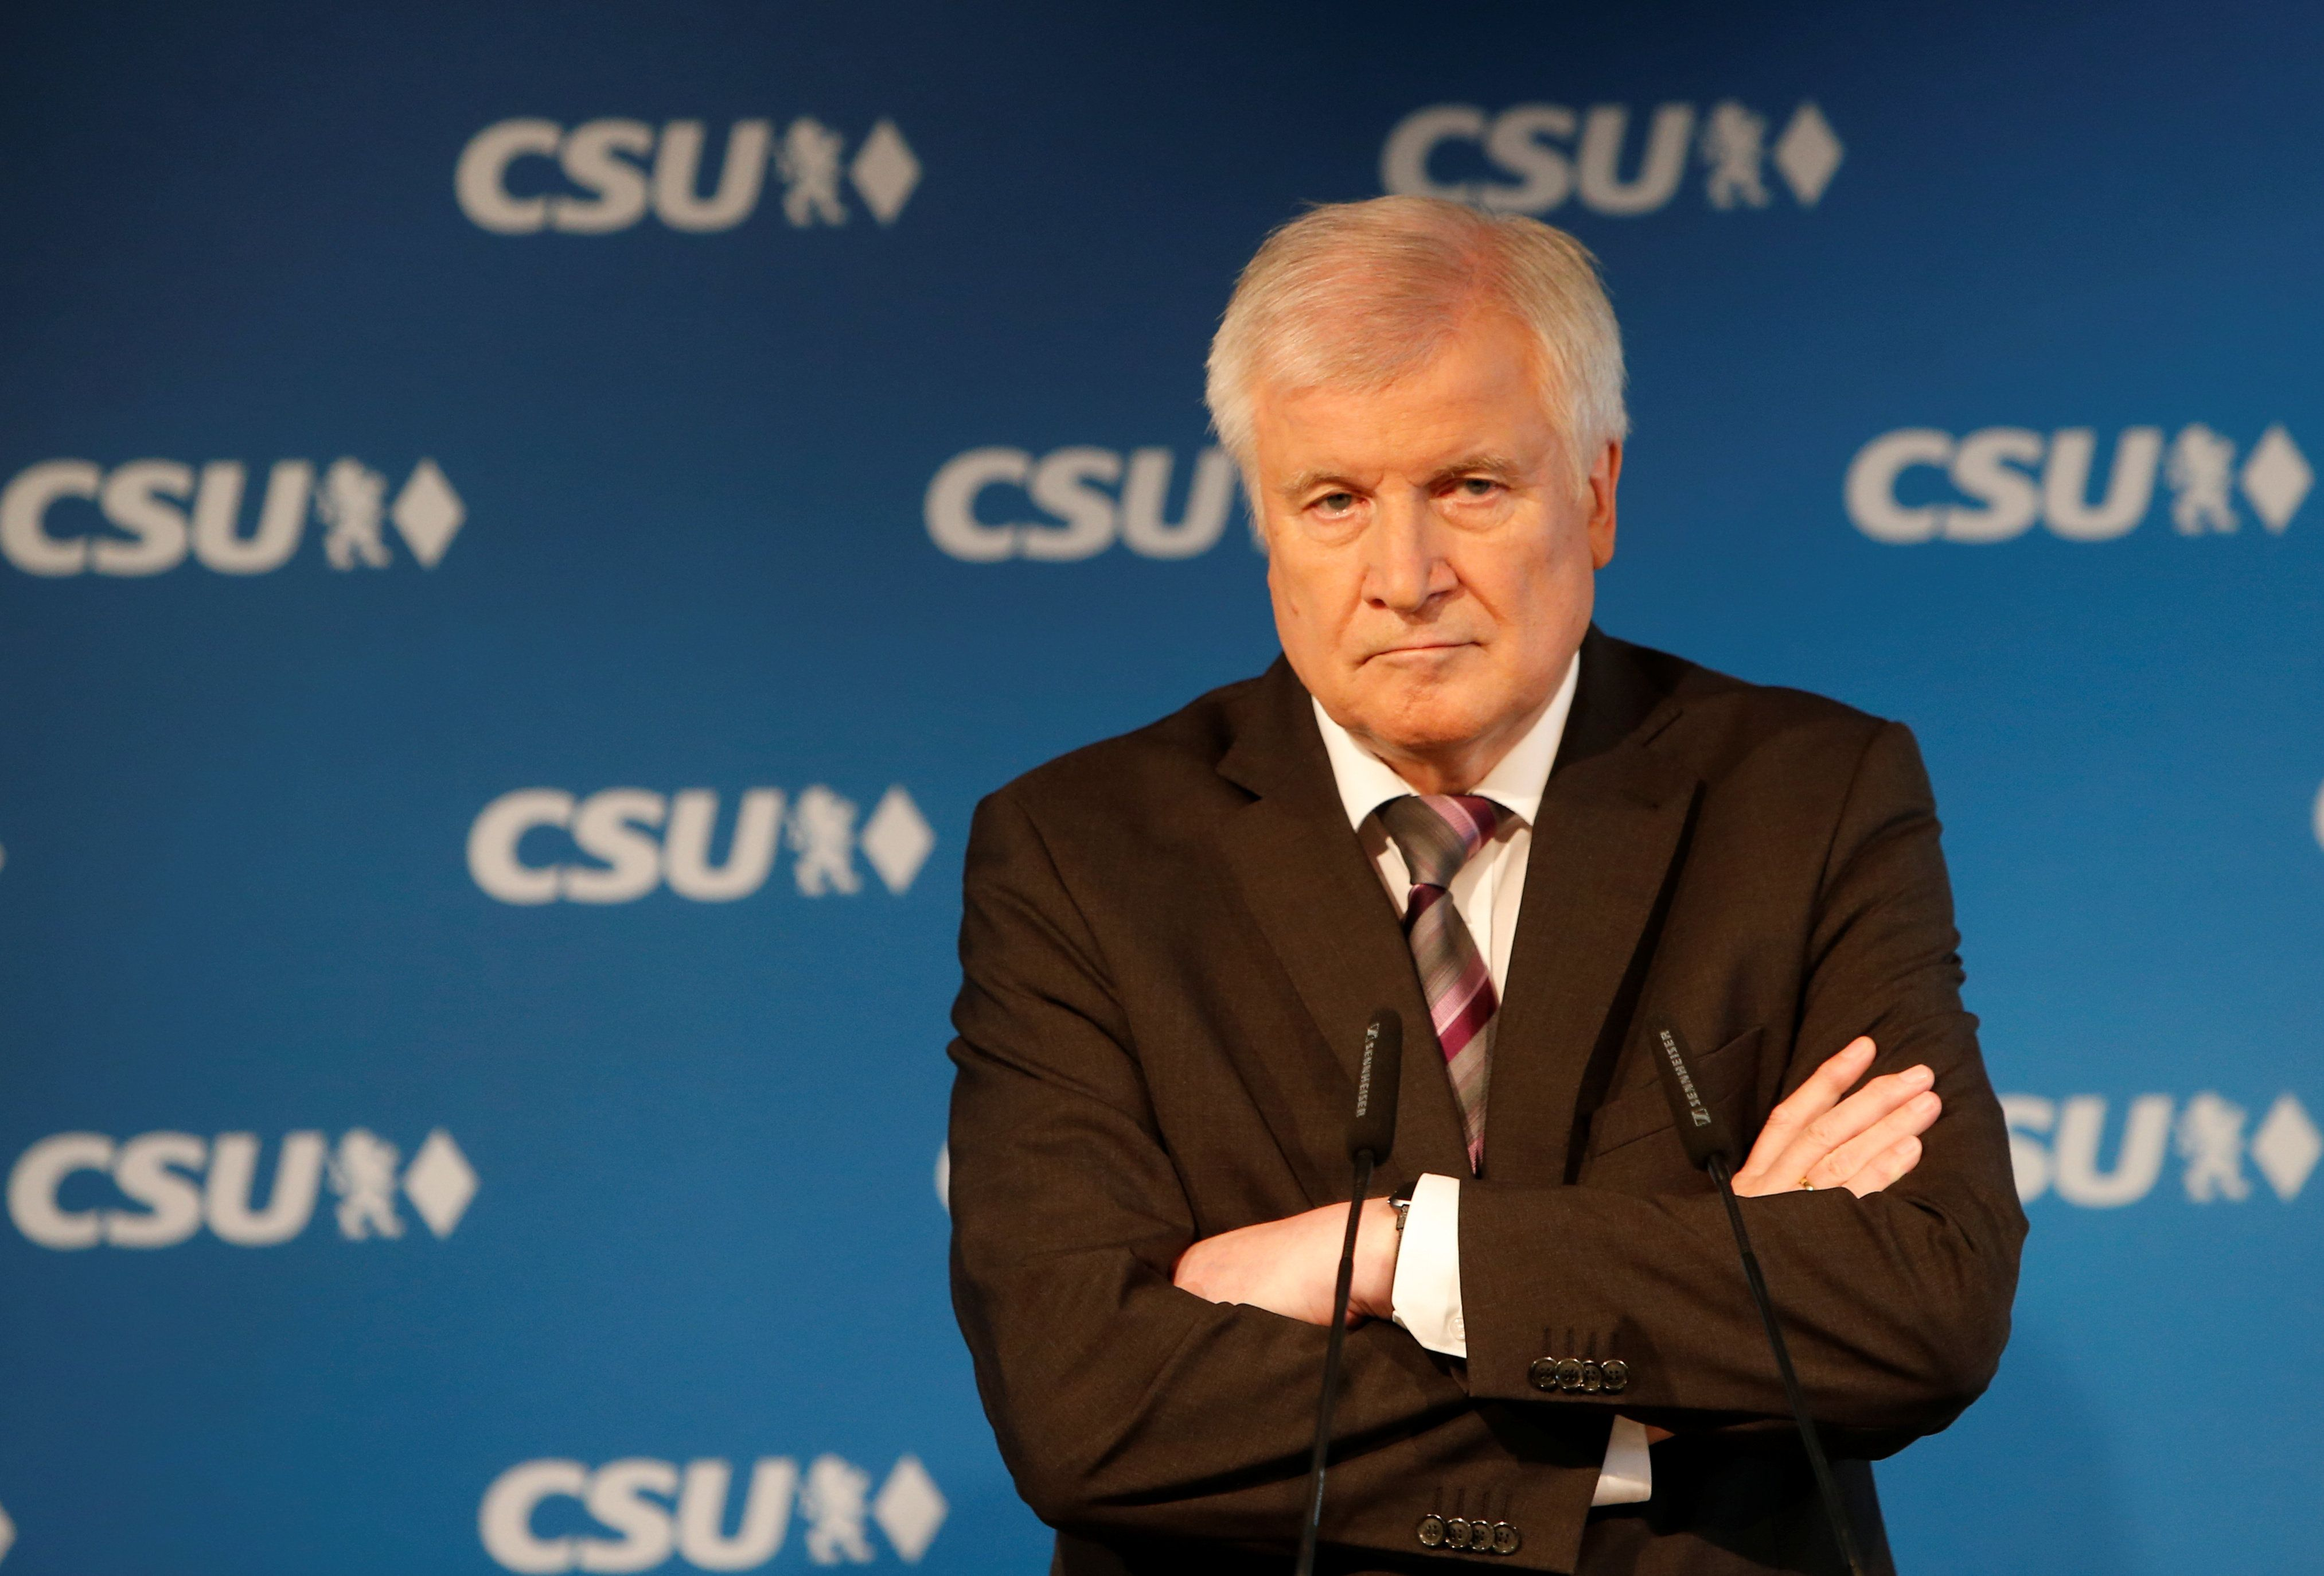 THE CENTER FADES FURTHER: BAVARIA'S ELECTIONS